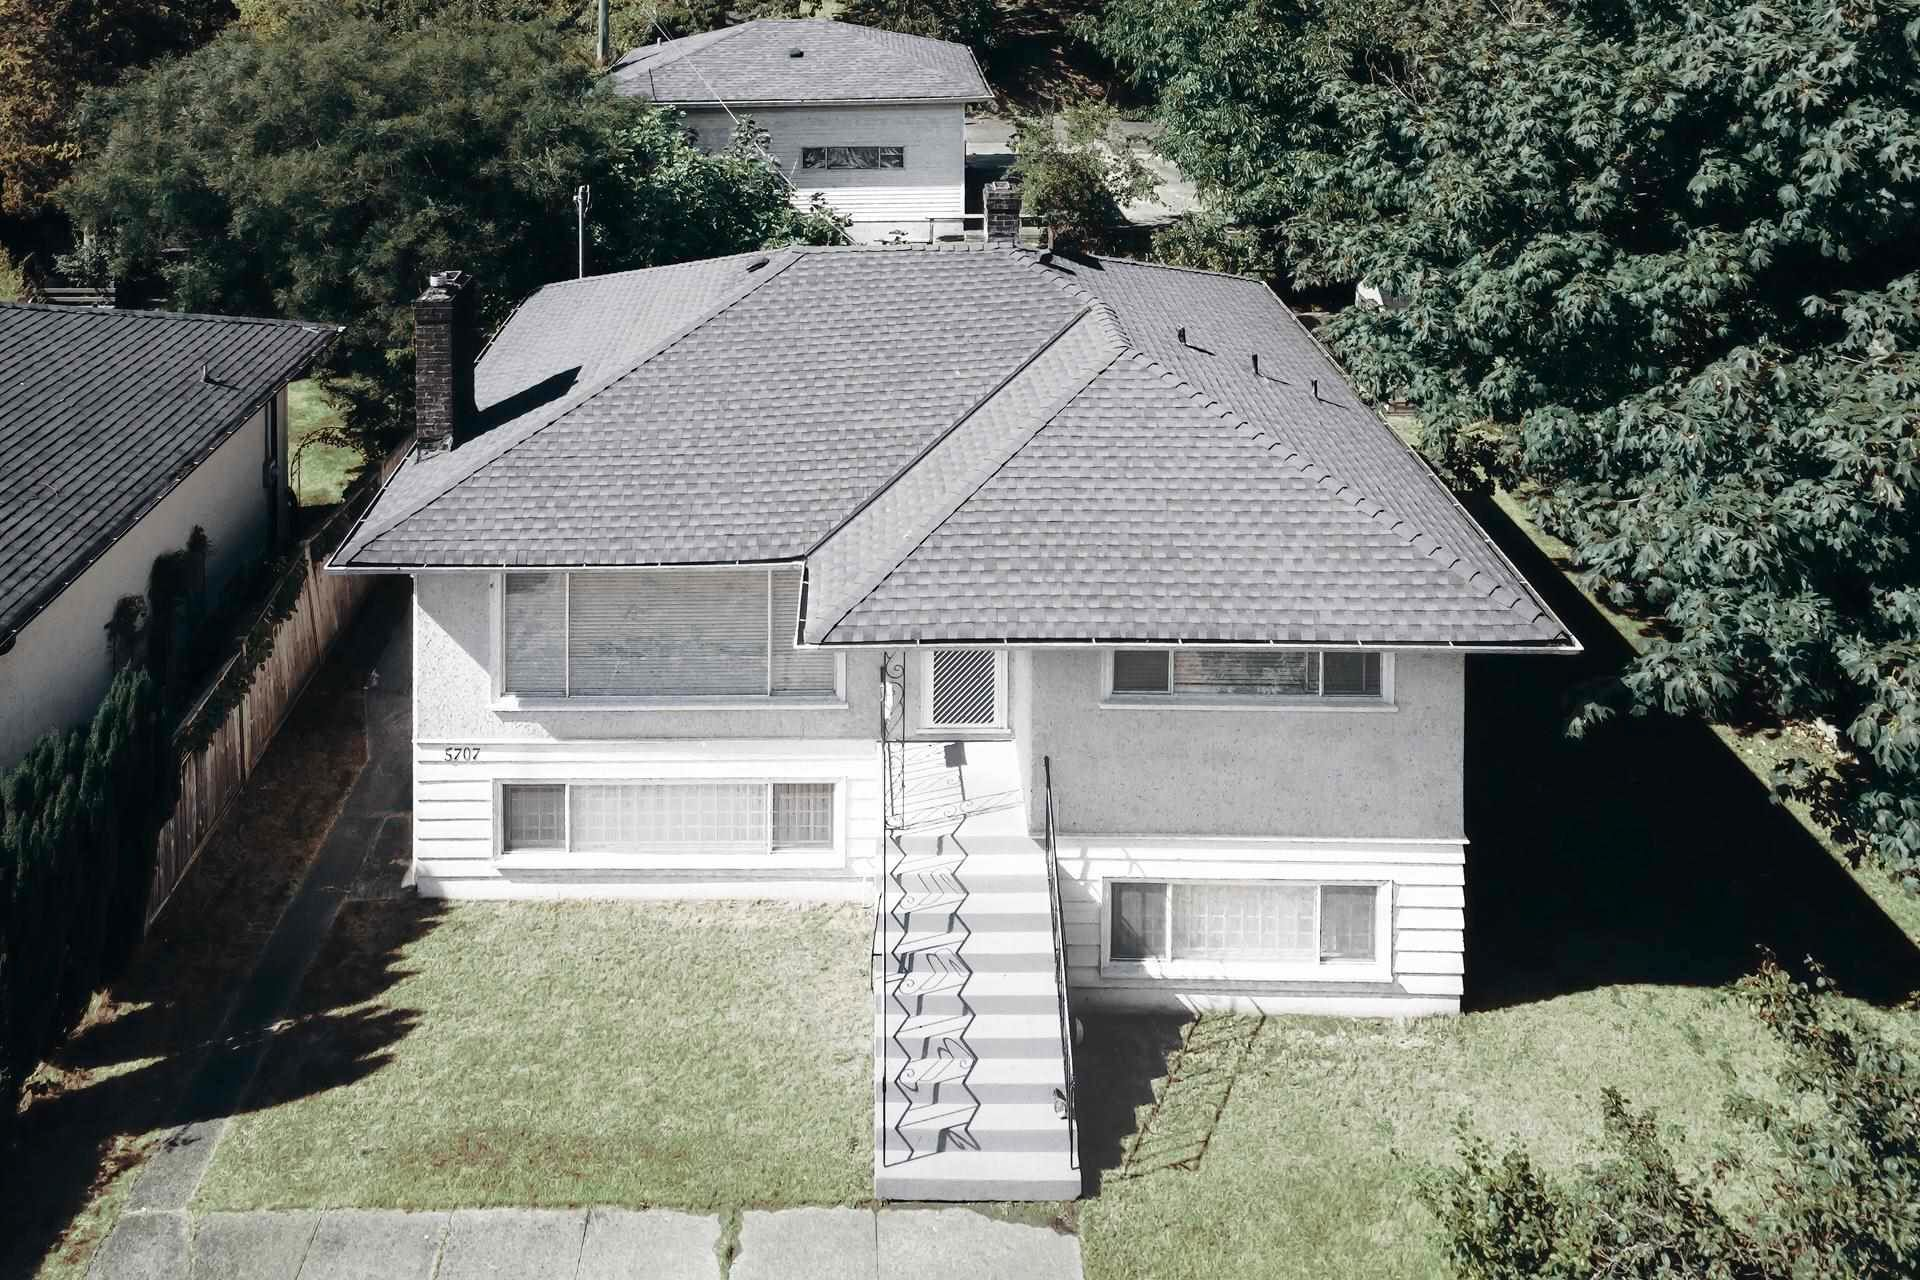 Main Photo: 5707 CARSON Street in Burnaby: South Slope House for sale (Burnaby South)  : MLS®# R2604095